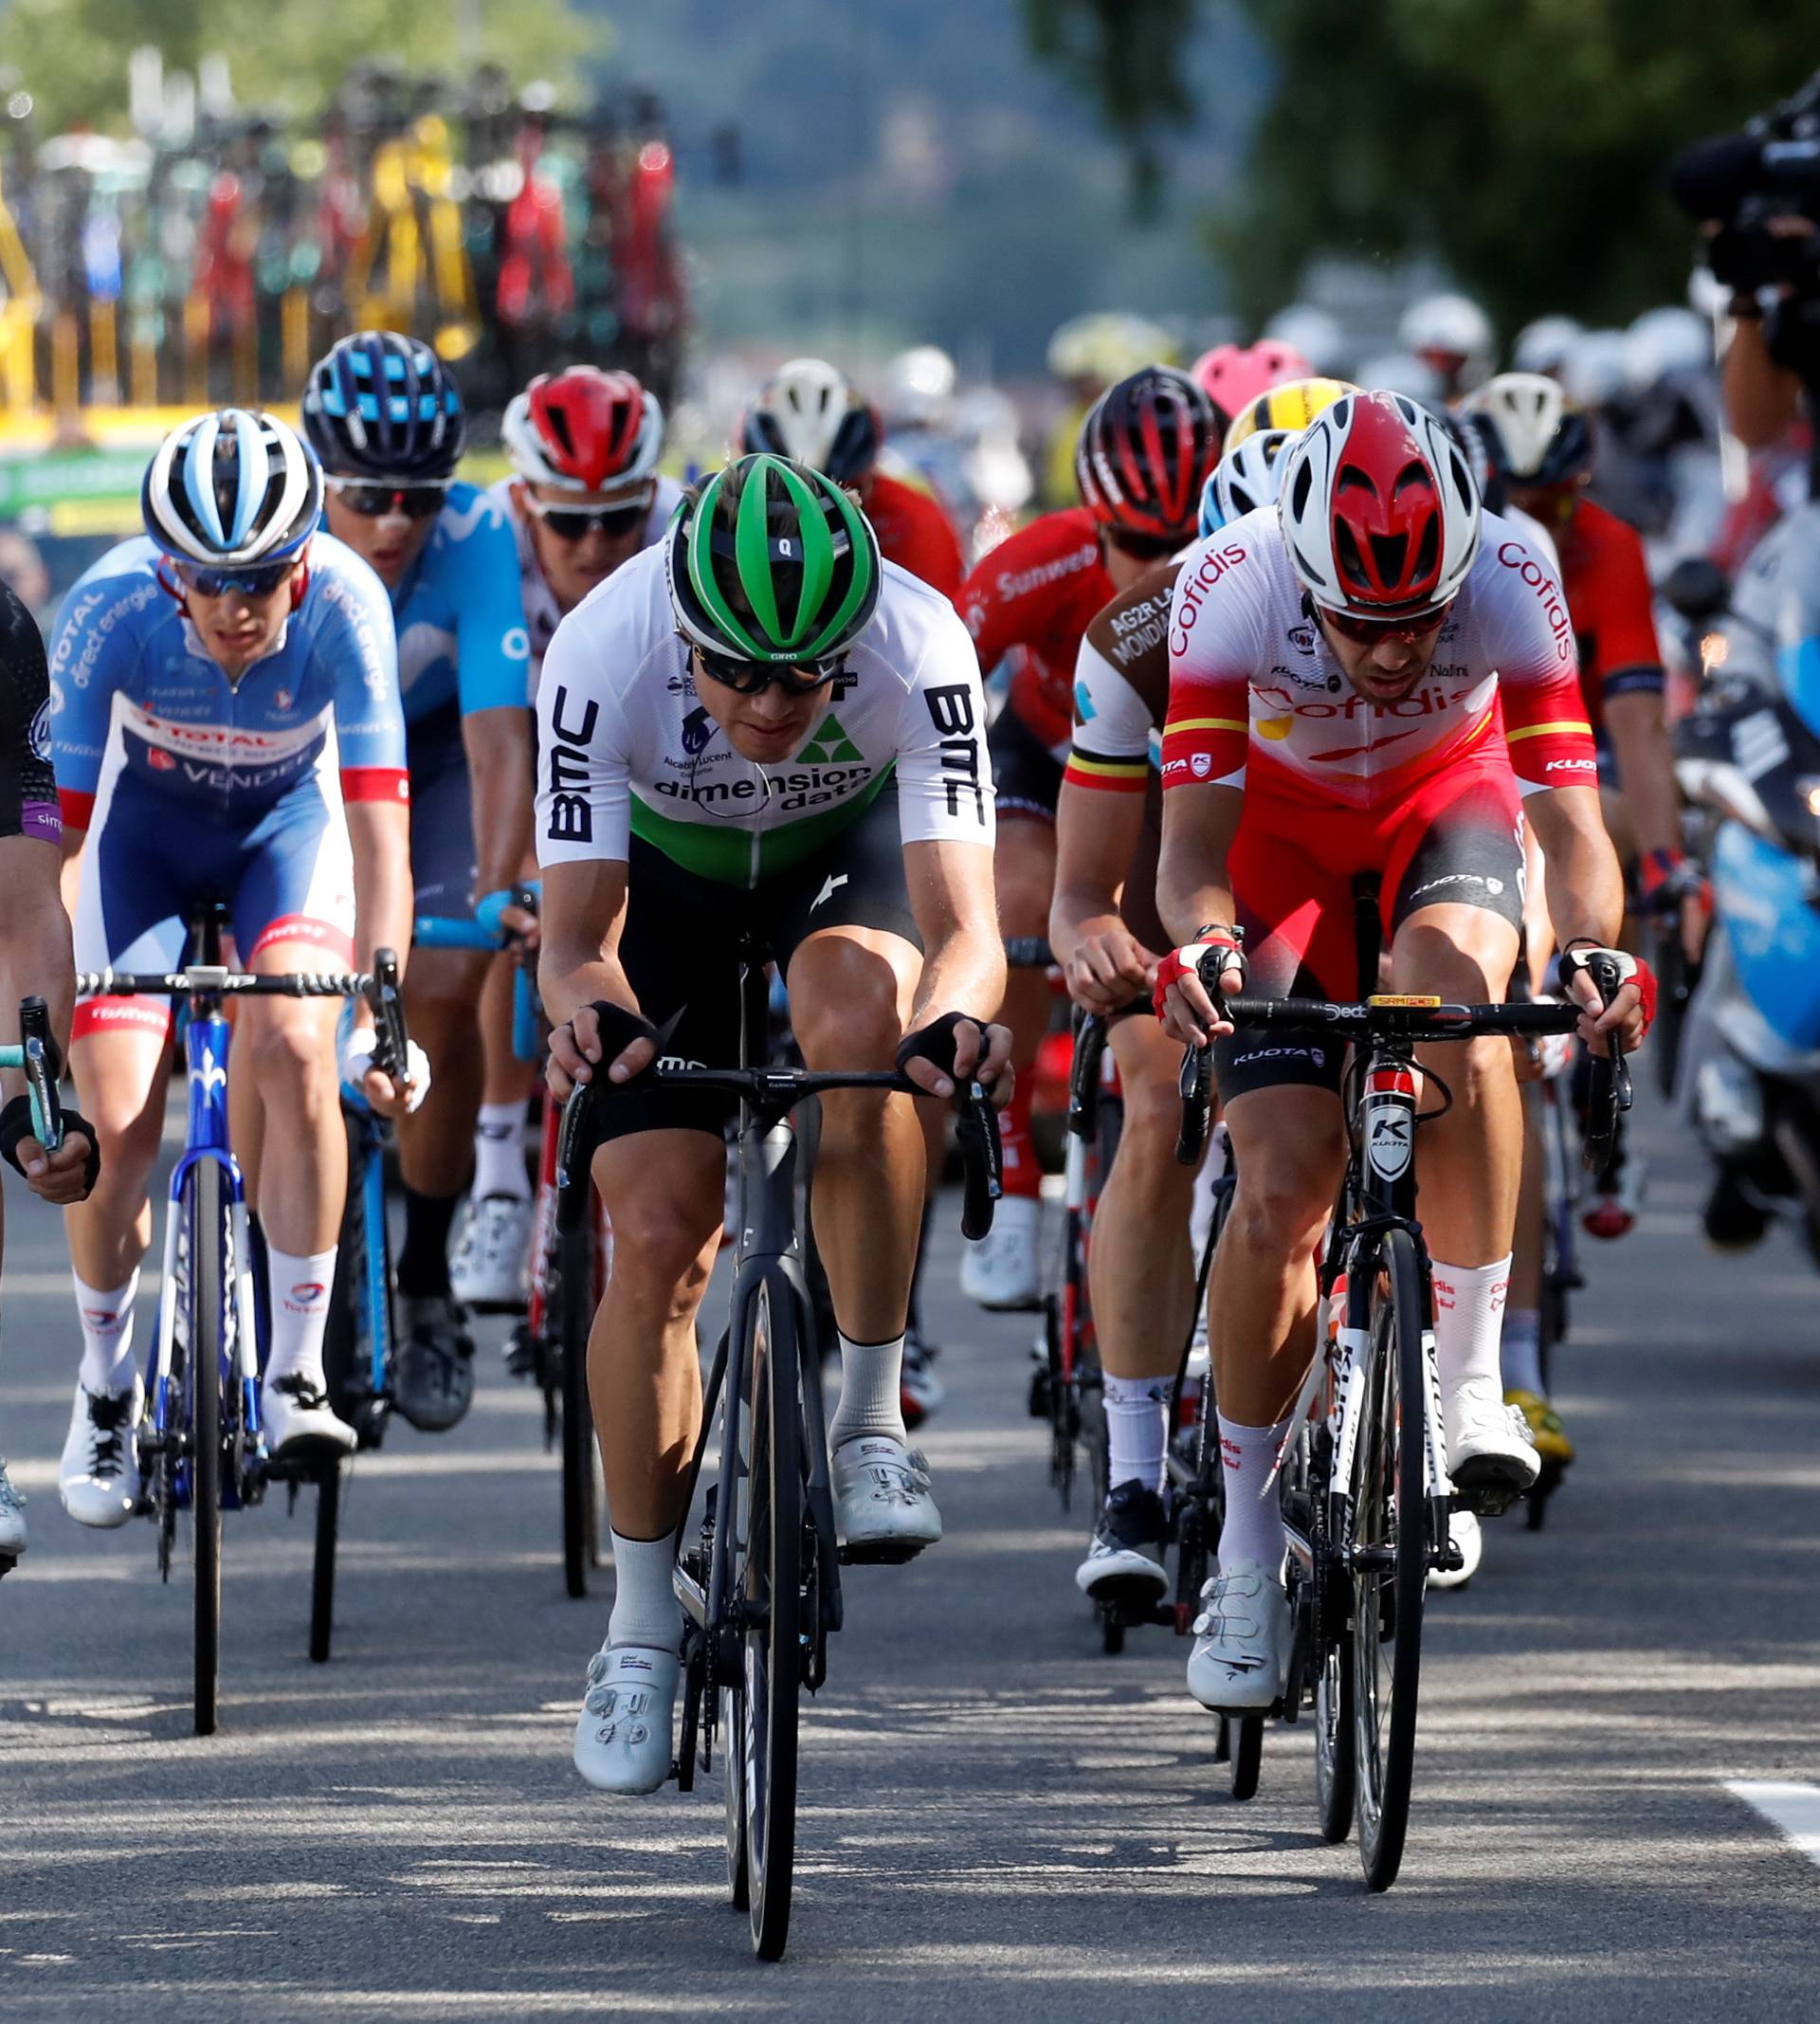 Tour de France - The 170.5-km Stage 9 from Saint-Etienne to Brioude